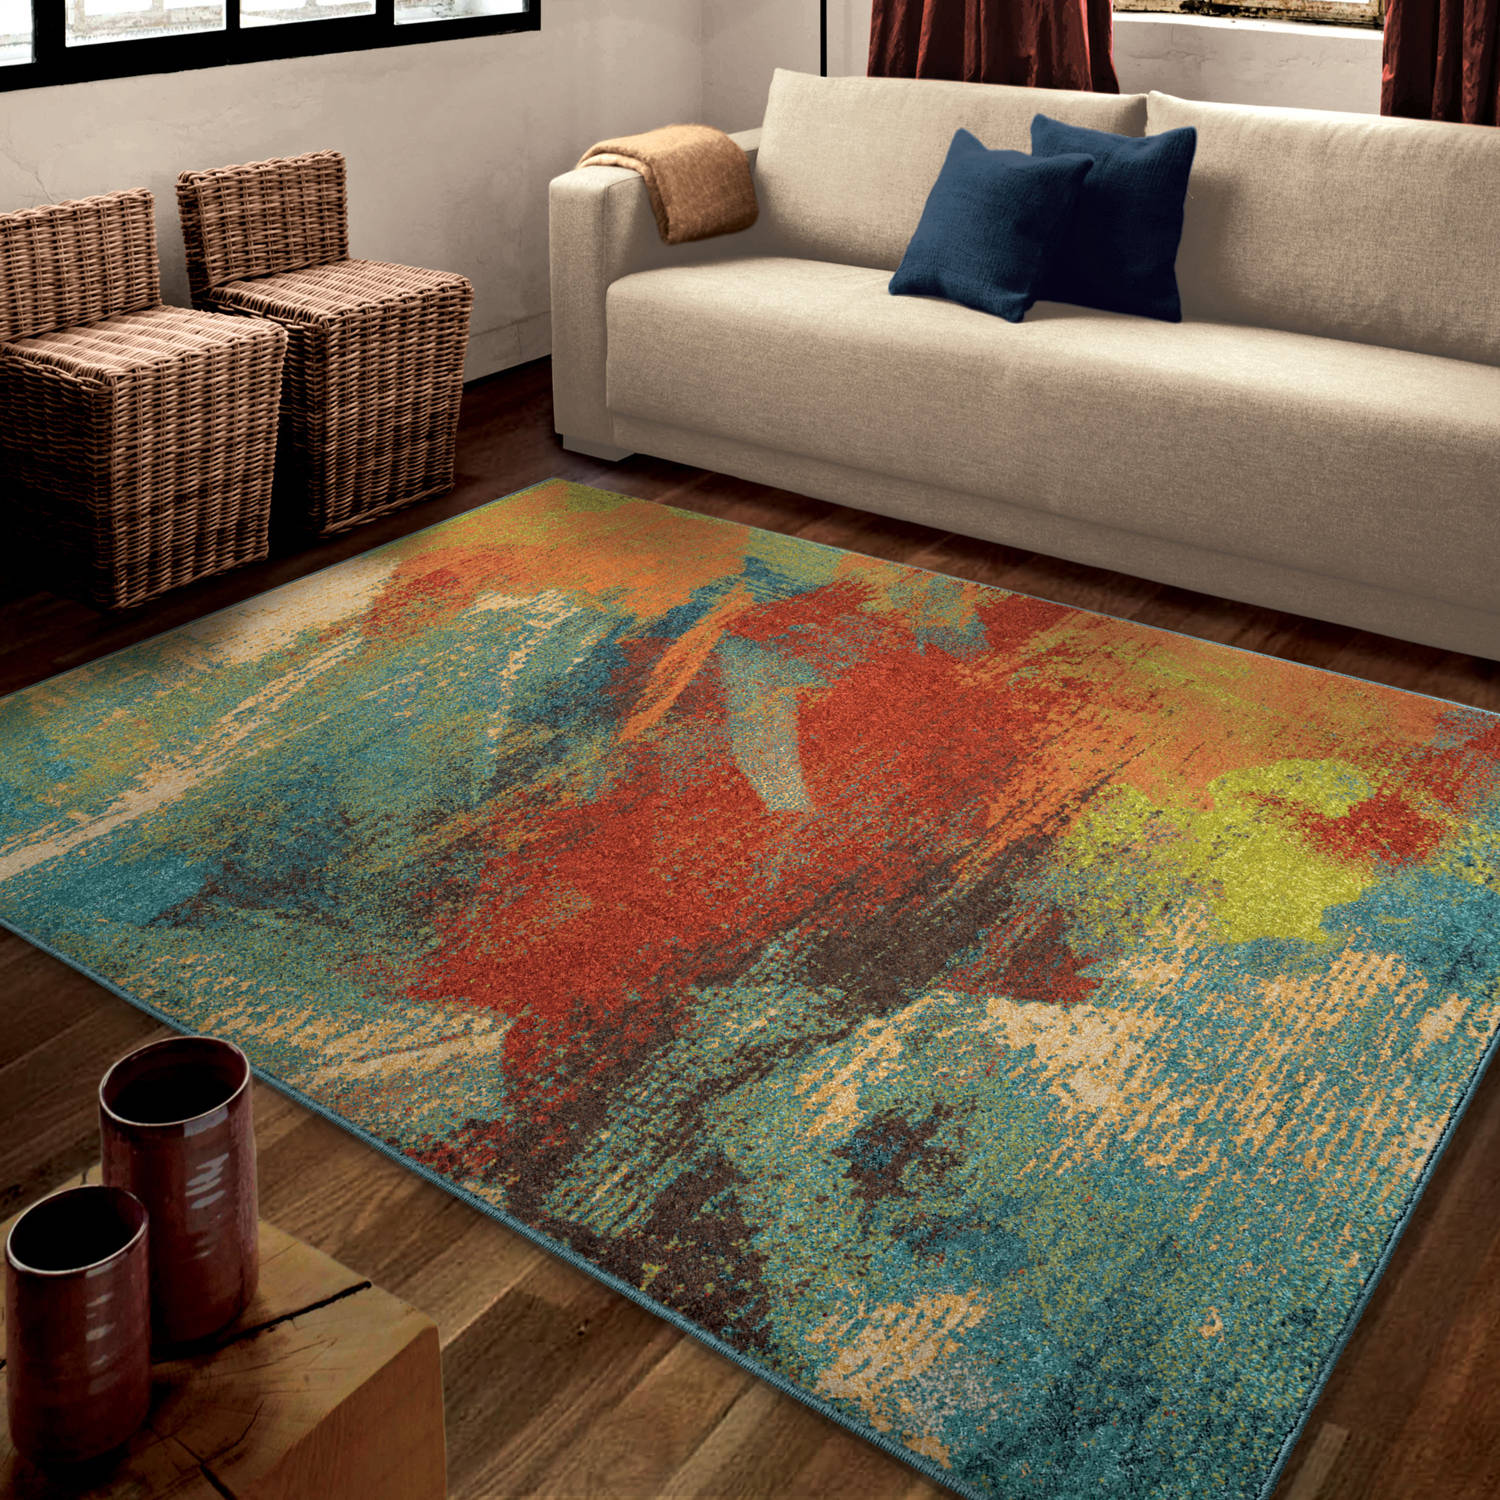 orian rugs bright opulence abstract multicolored area rug  - orian rugs bright opulence abstract multicolored area rug  walmartcom